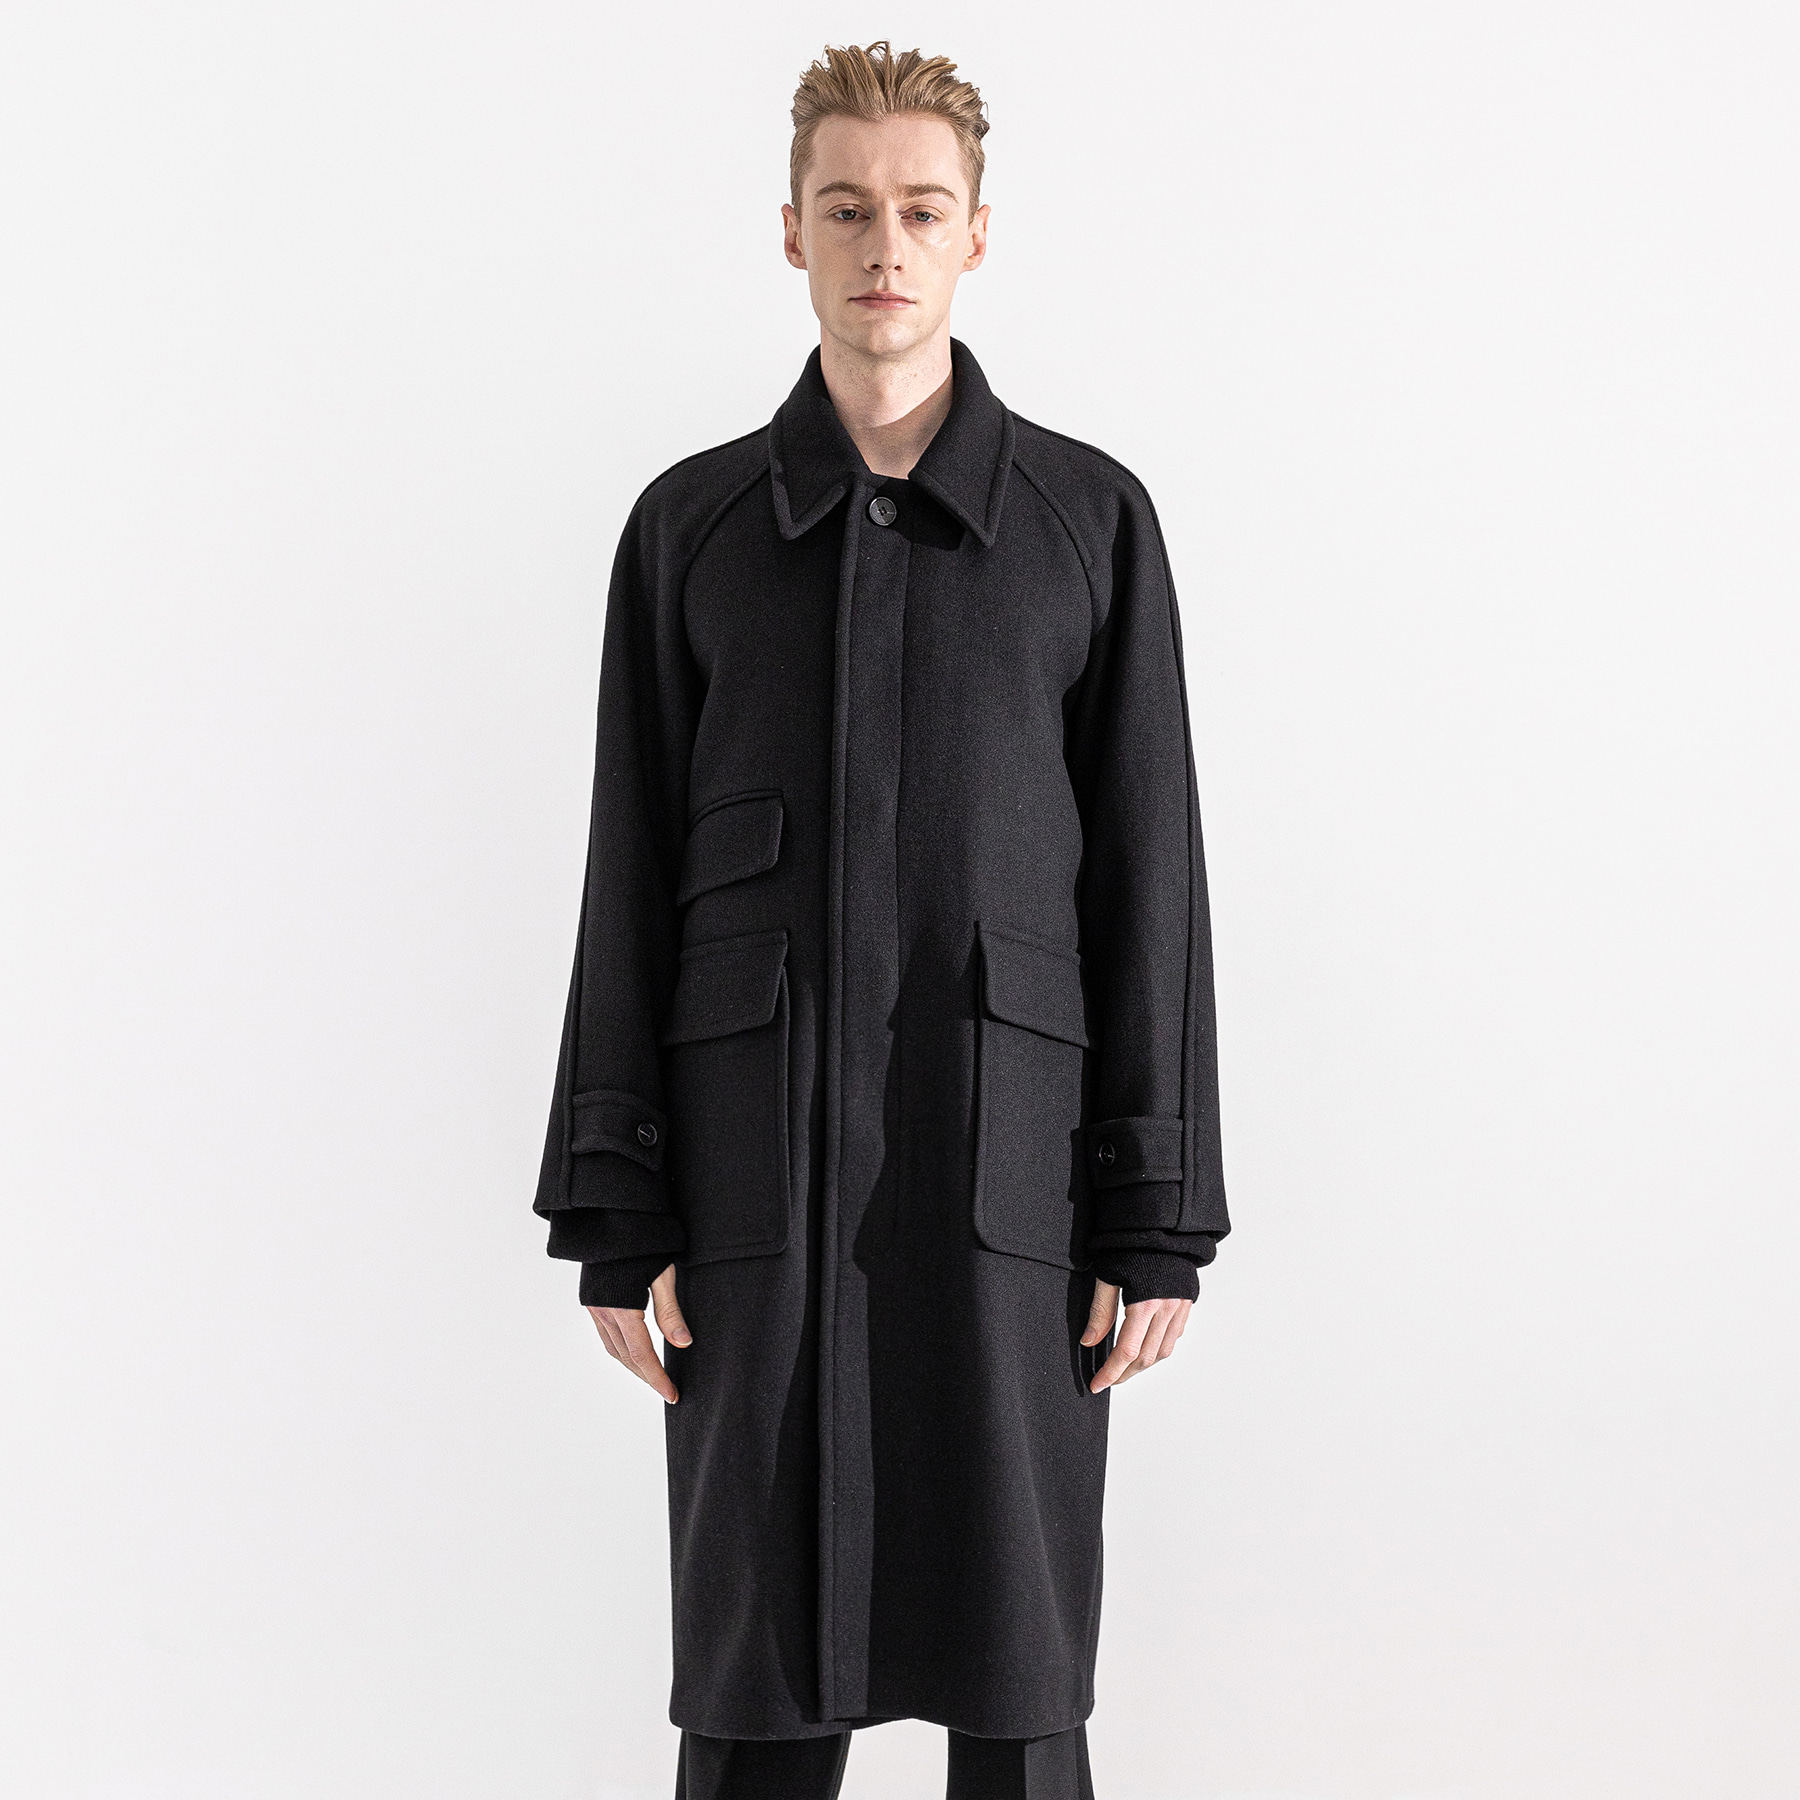 THREE WEBPOCKET BALMACAAN WOOL COAT MWZCT003-BK